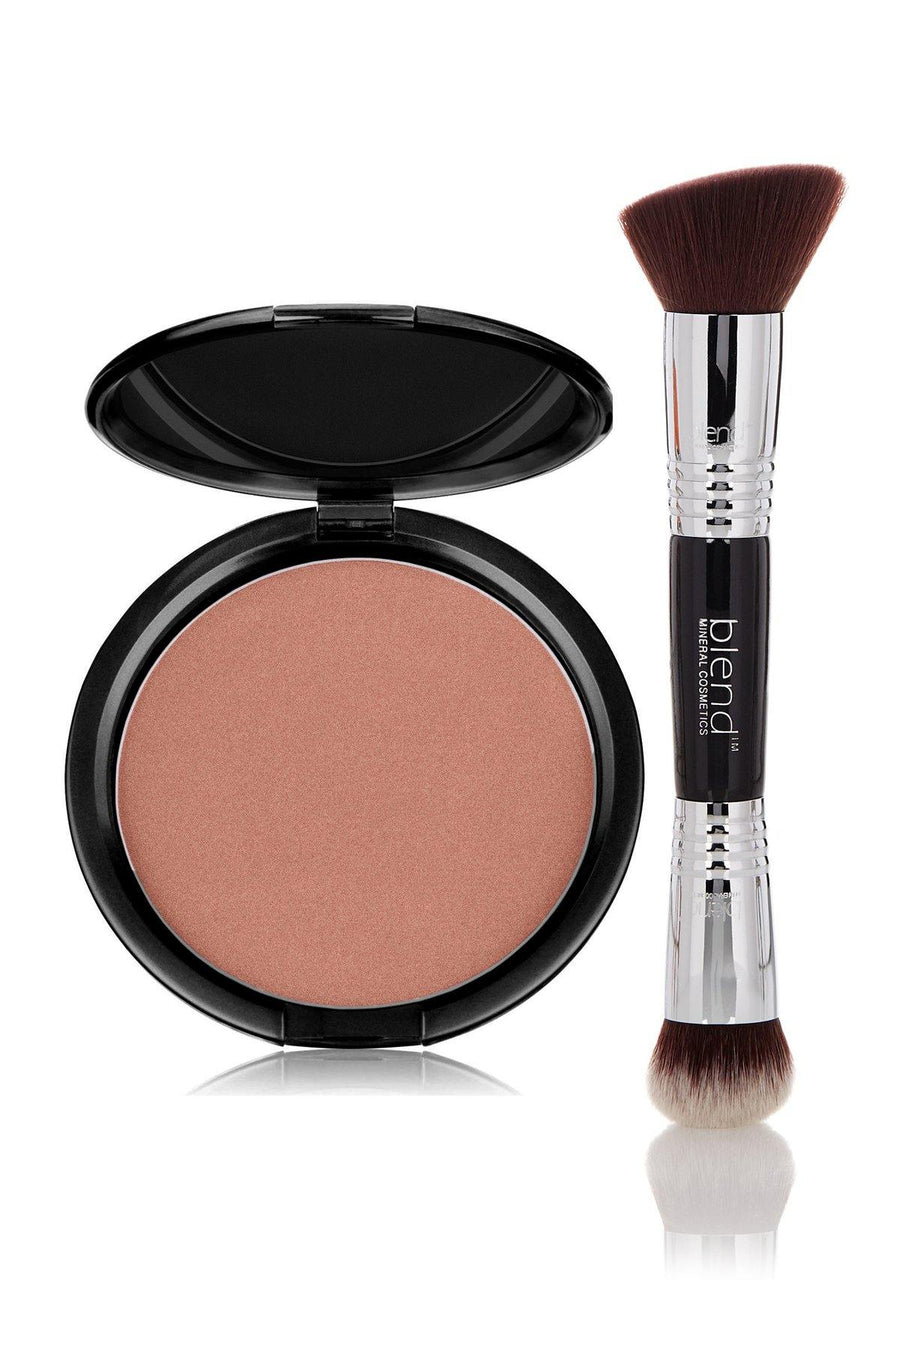 Bronzer Mineral Pressed Powder & Brush Set - Goddess - Blend Mineral Cosmetics